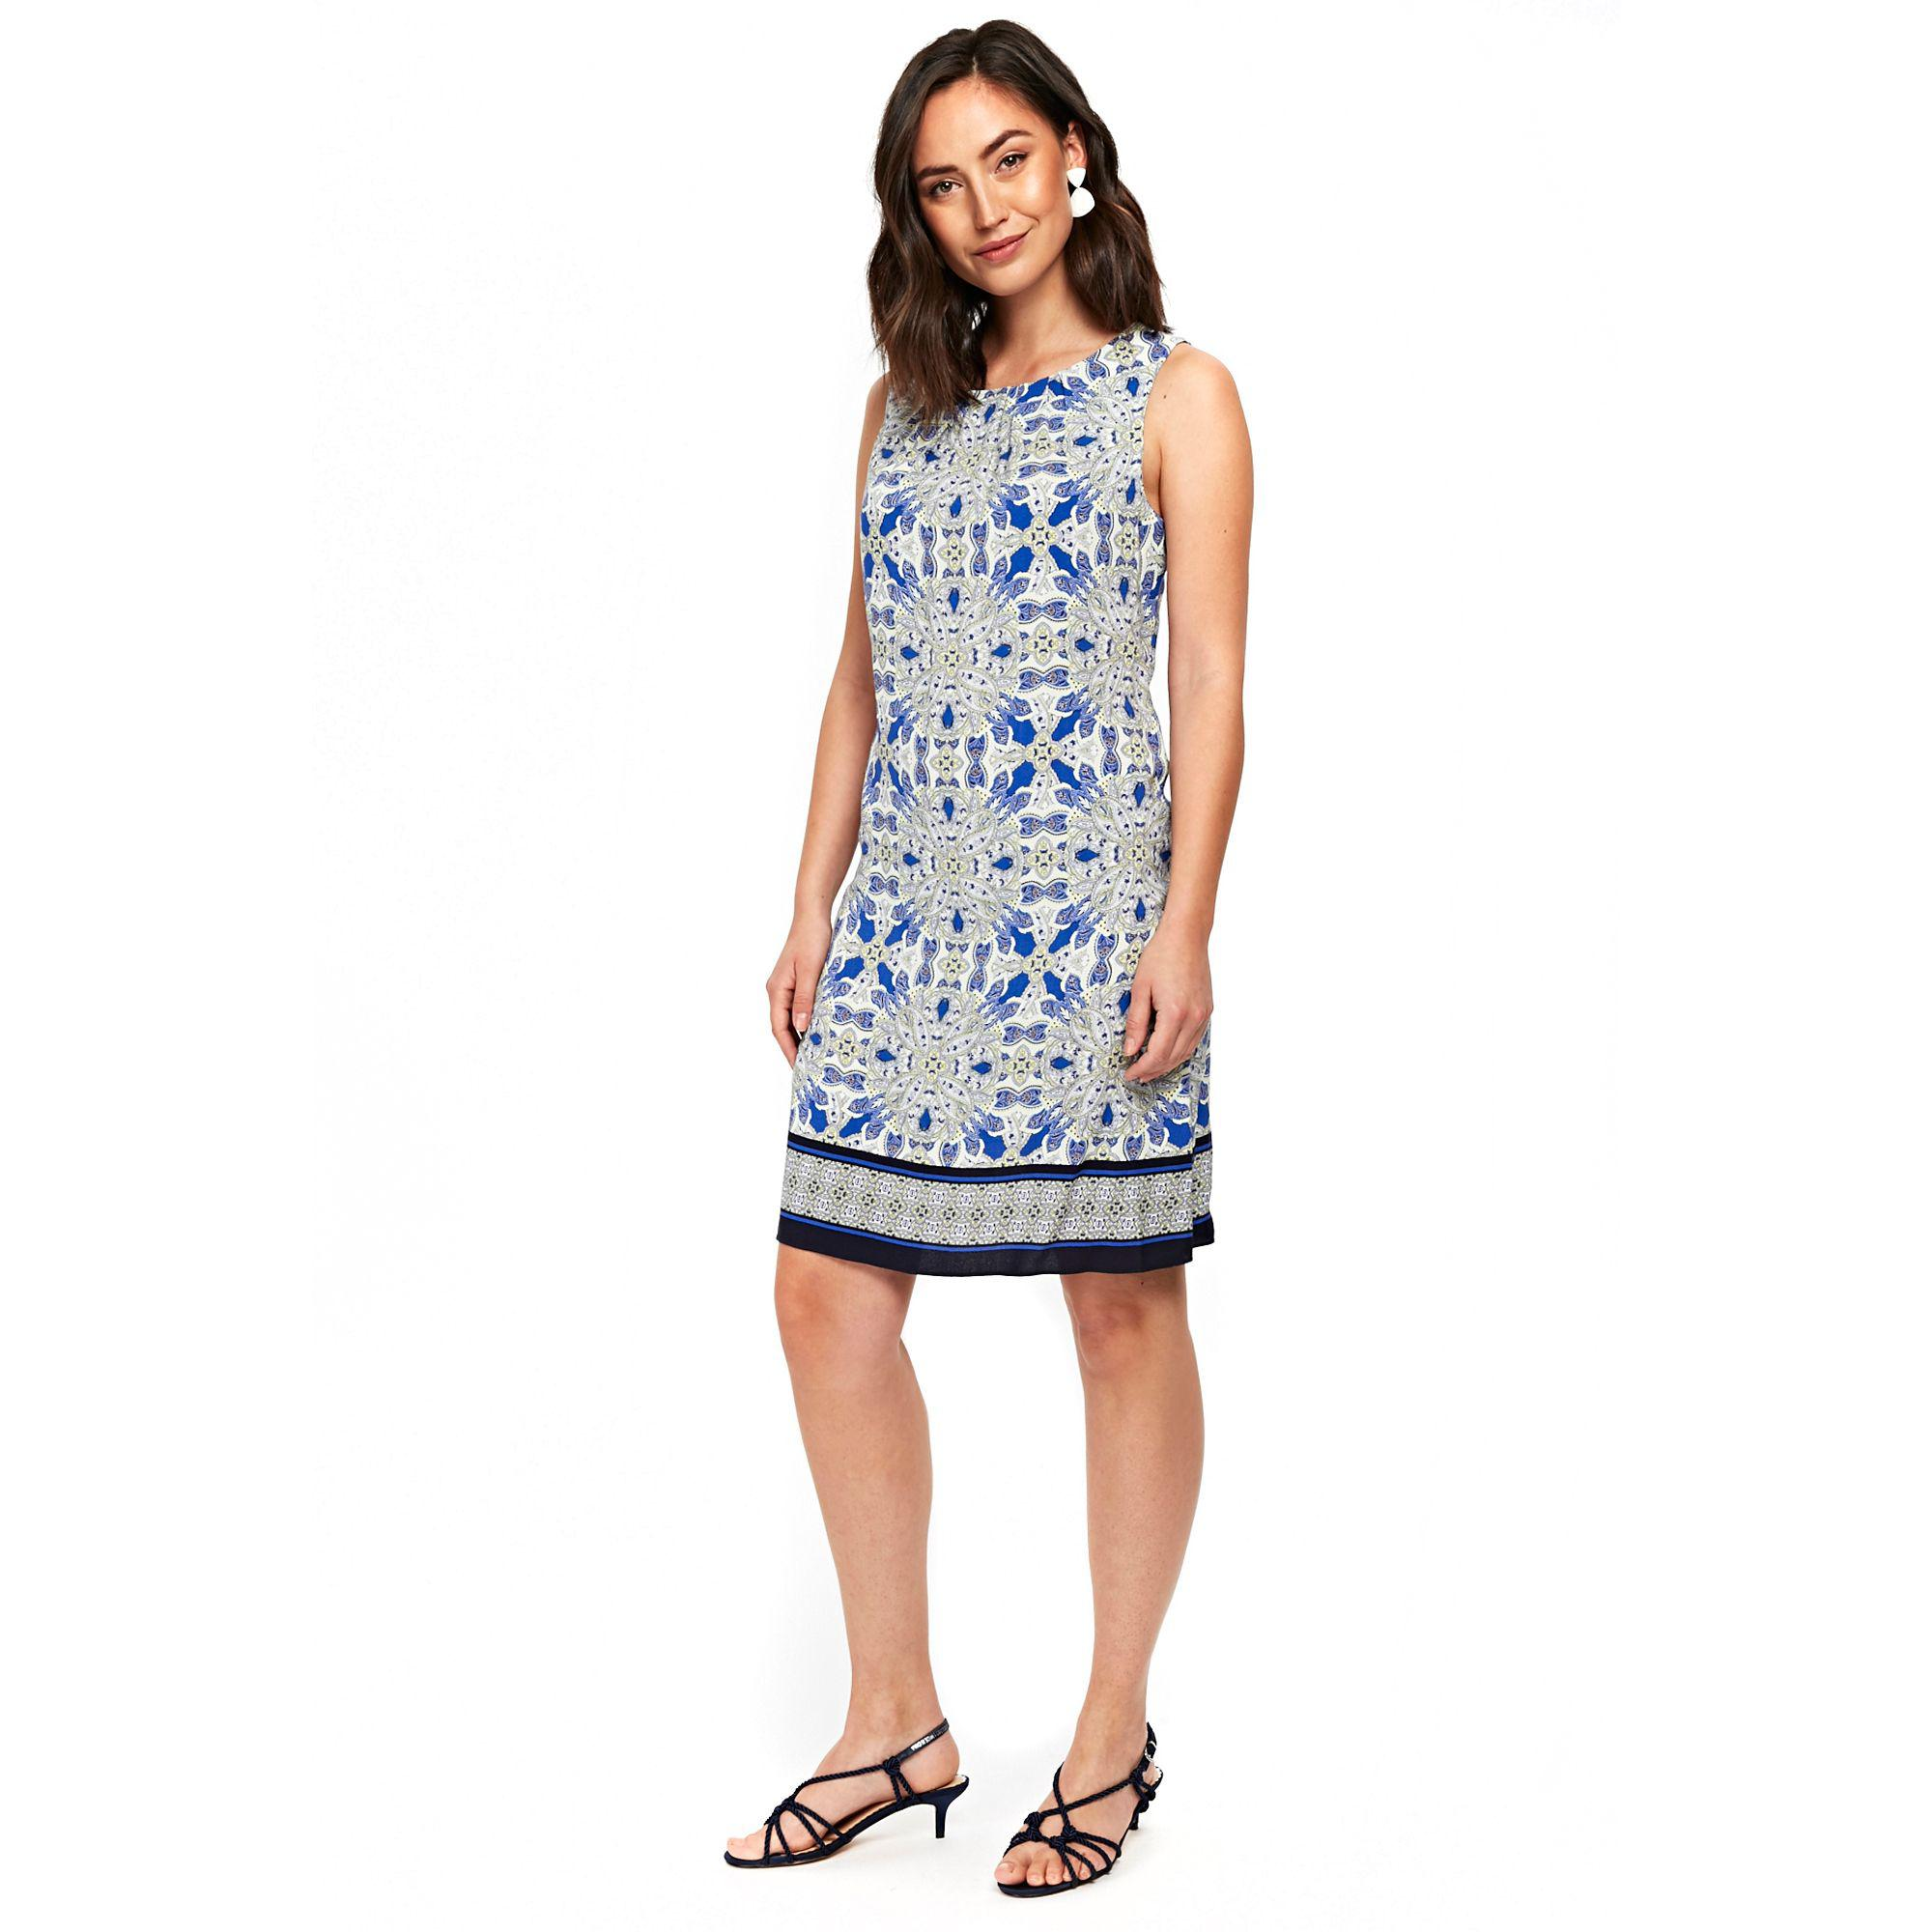 68adfa8af71c wallis-designer-Blue-Blue-Colourpop-Paisley-Pinafore-Dress.jpeg